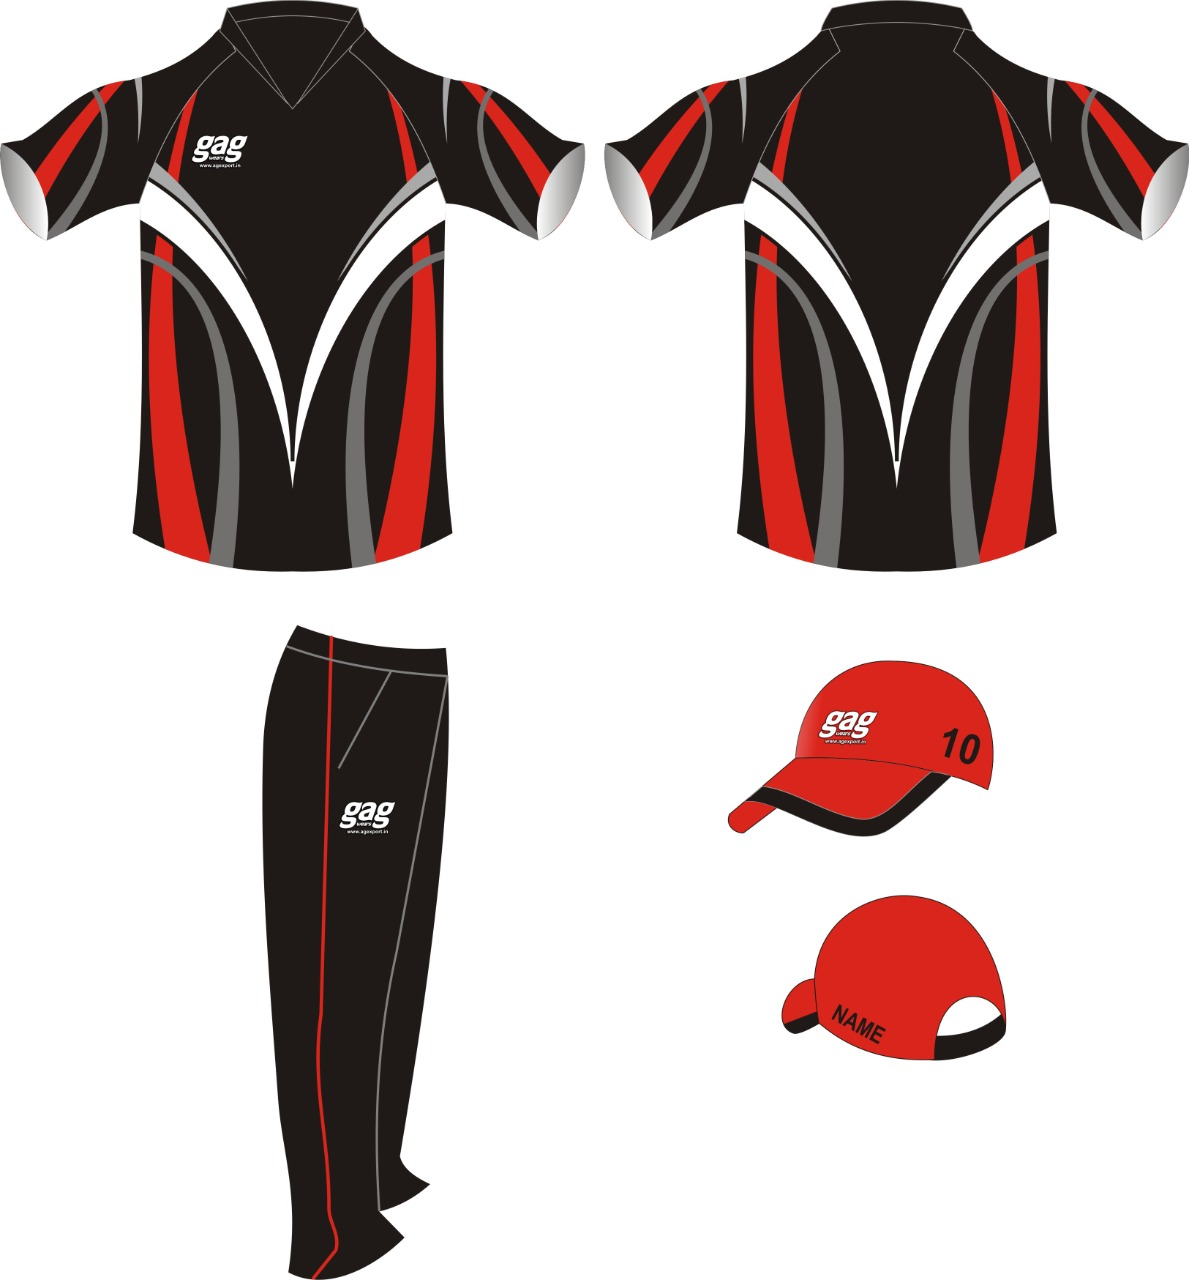 Mens Cricket Uniform Manufacturers in Jalandhar in Austria